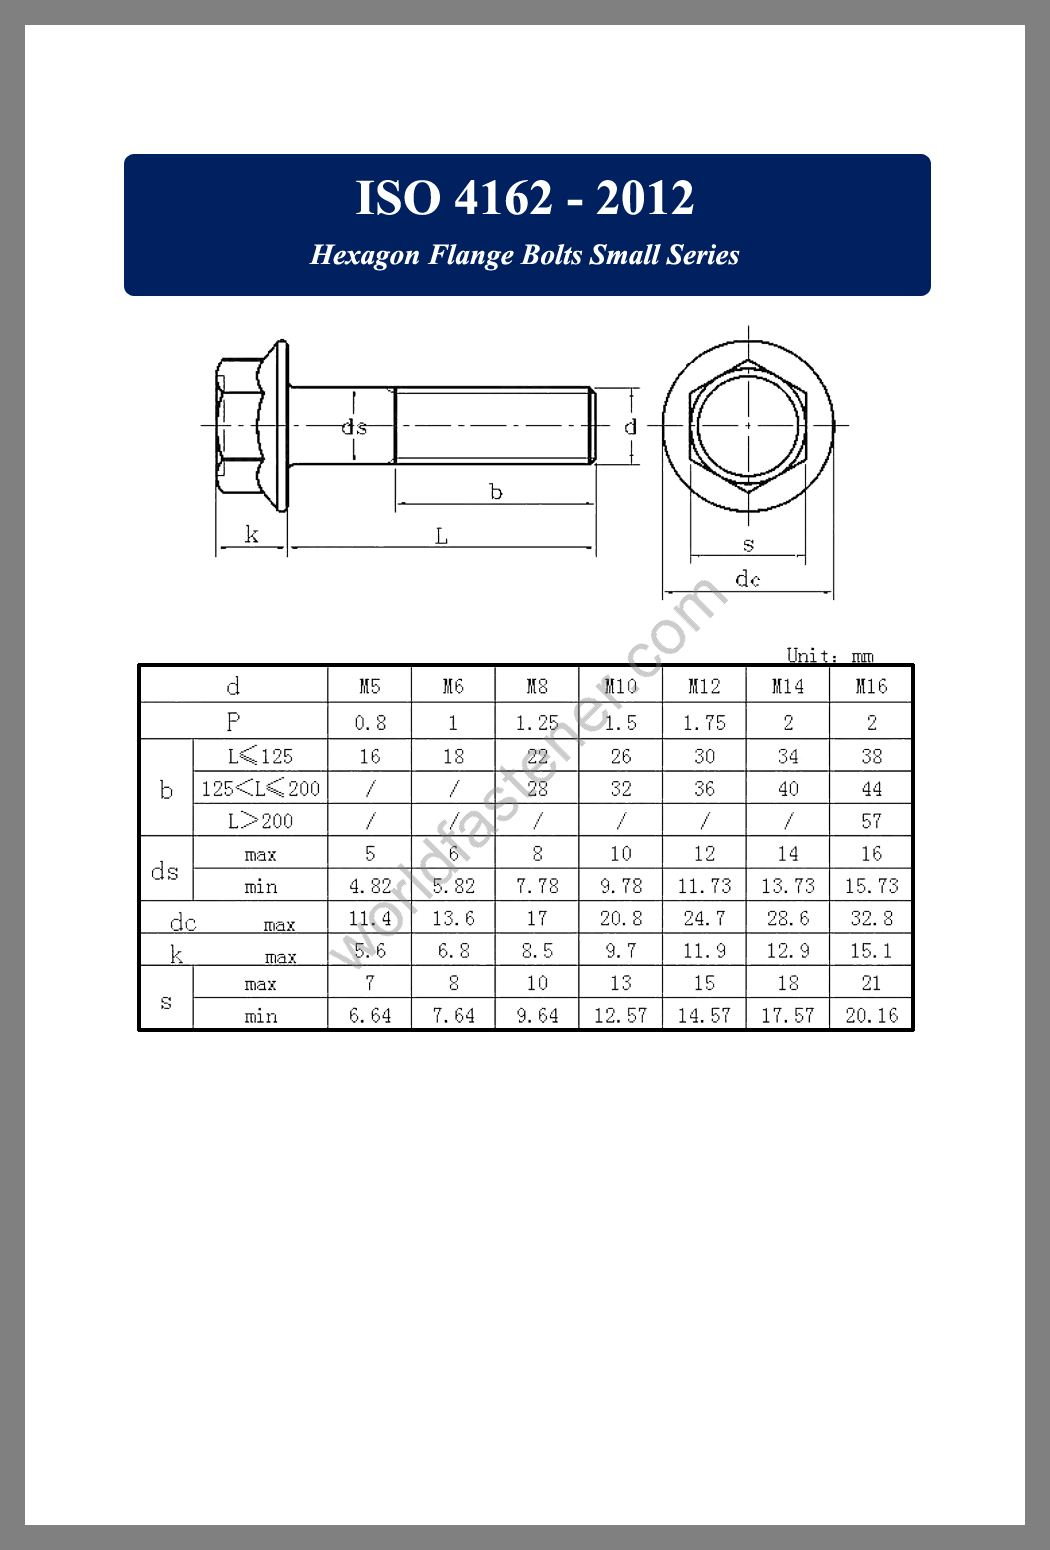 ISO 4162, ISO 4162 Flanged Bolts, Flange screws, fastener, screw, bolt, ISO bolts